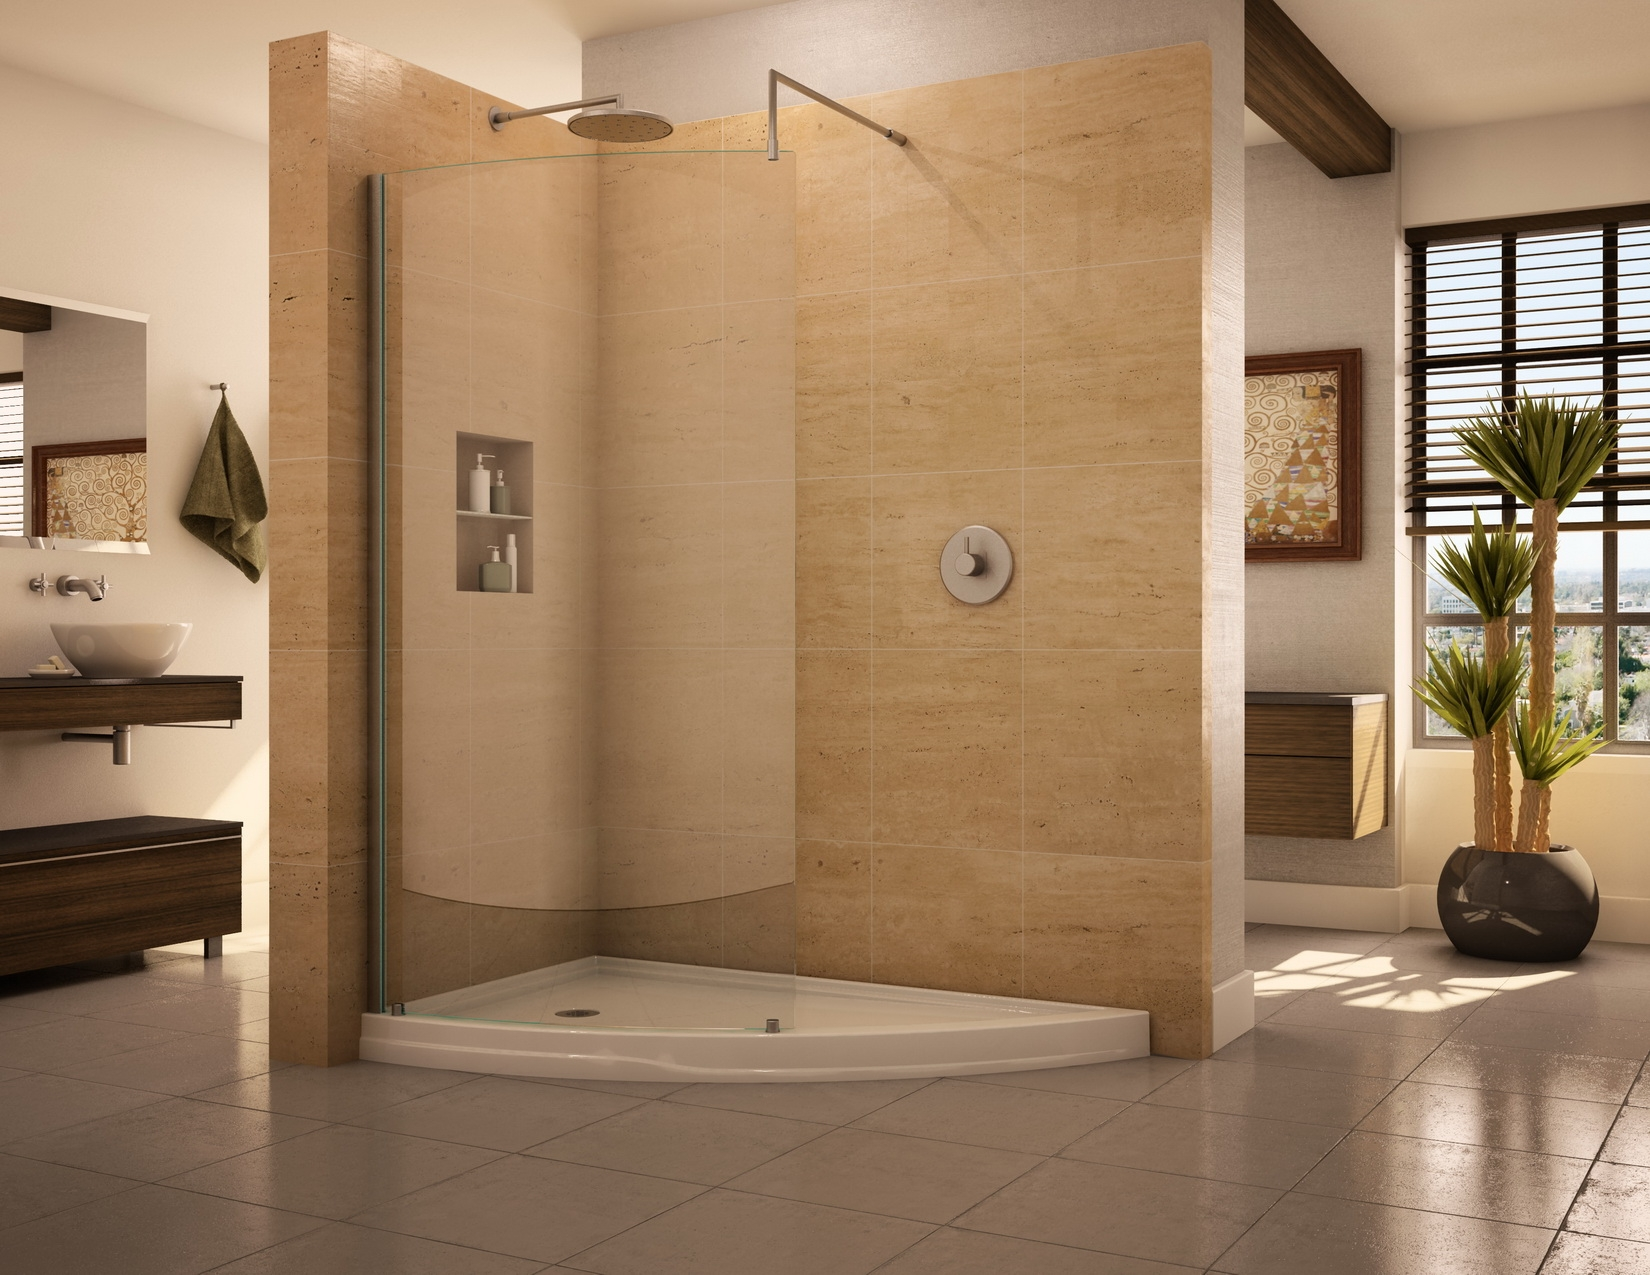 Use Similar But Slightly Different Materials For The Shower.